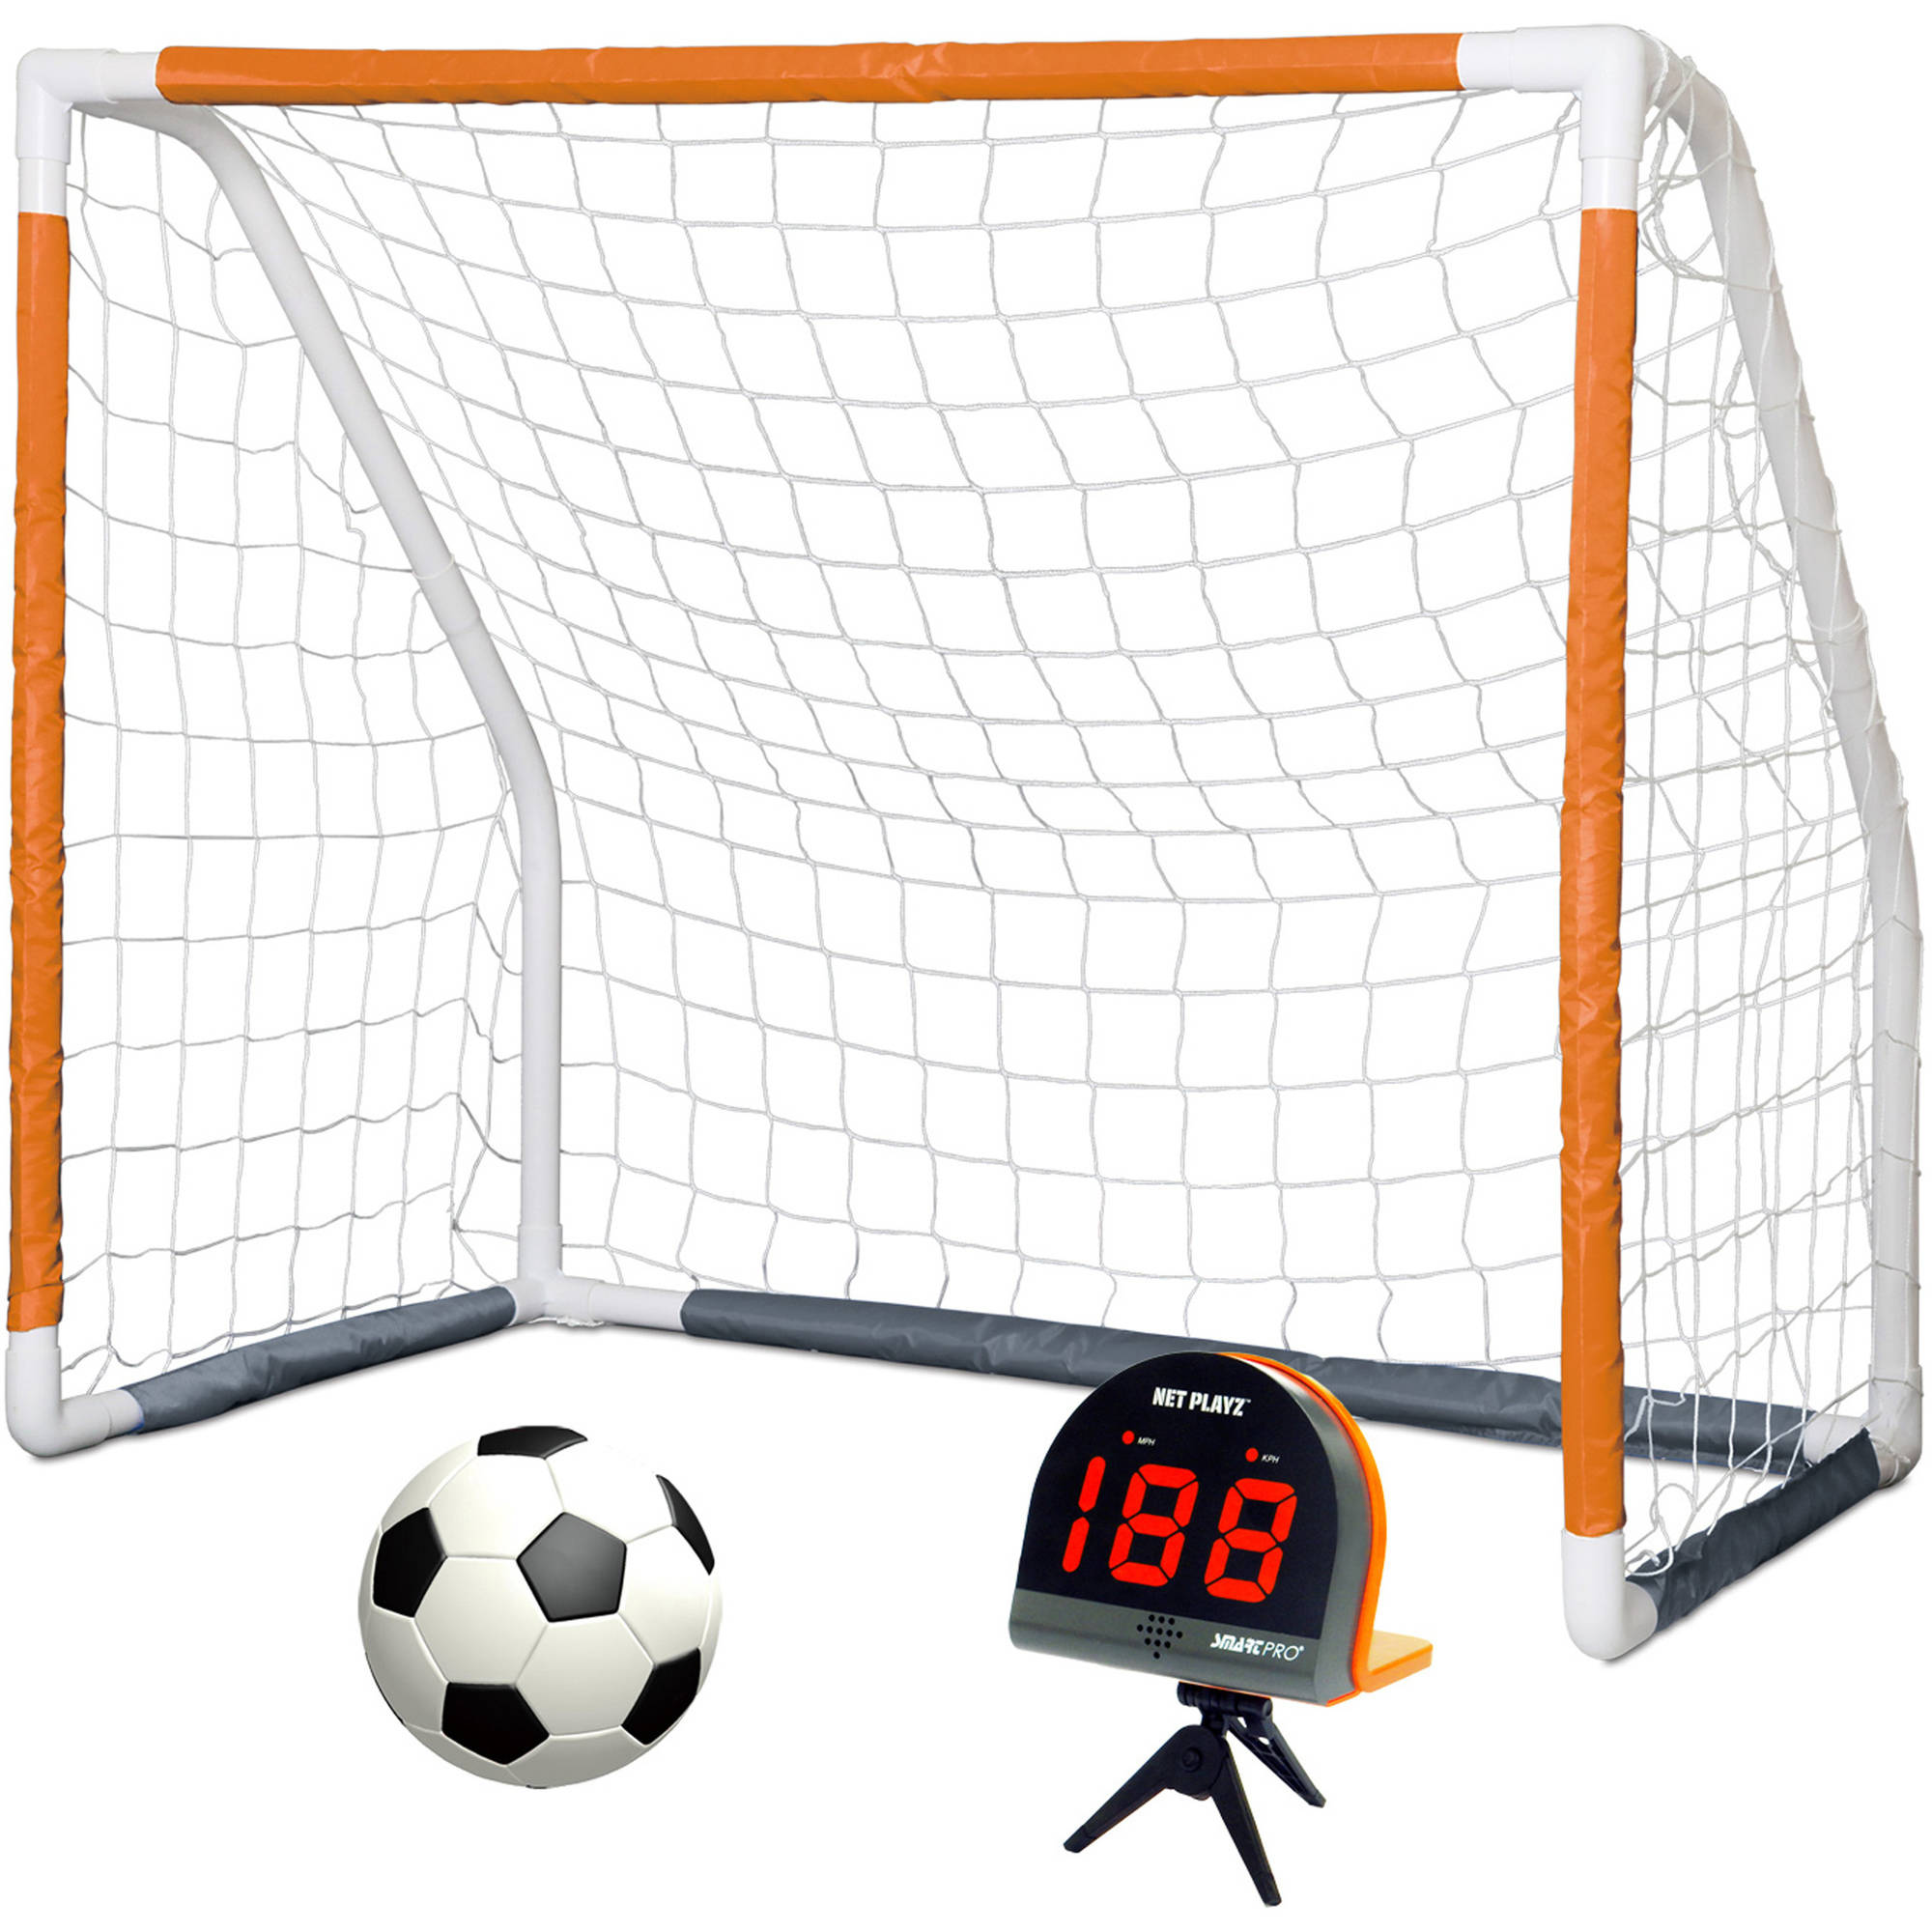 Net Playz Smart Pro Sports Speed Radar and 5ft x 4ft Soccer Goal with Size 4 Ball Combo by SHENG XIN SPORTS GOODS CO, LTD.